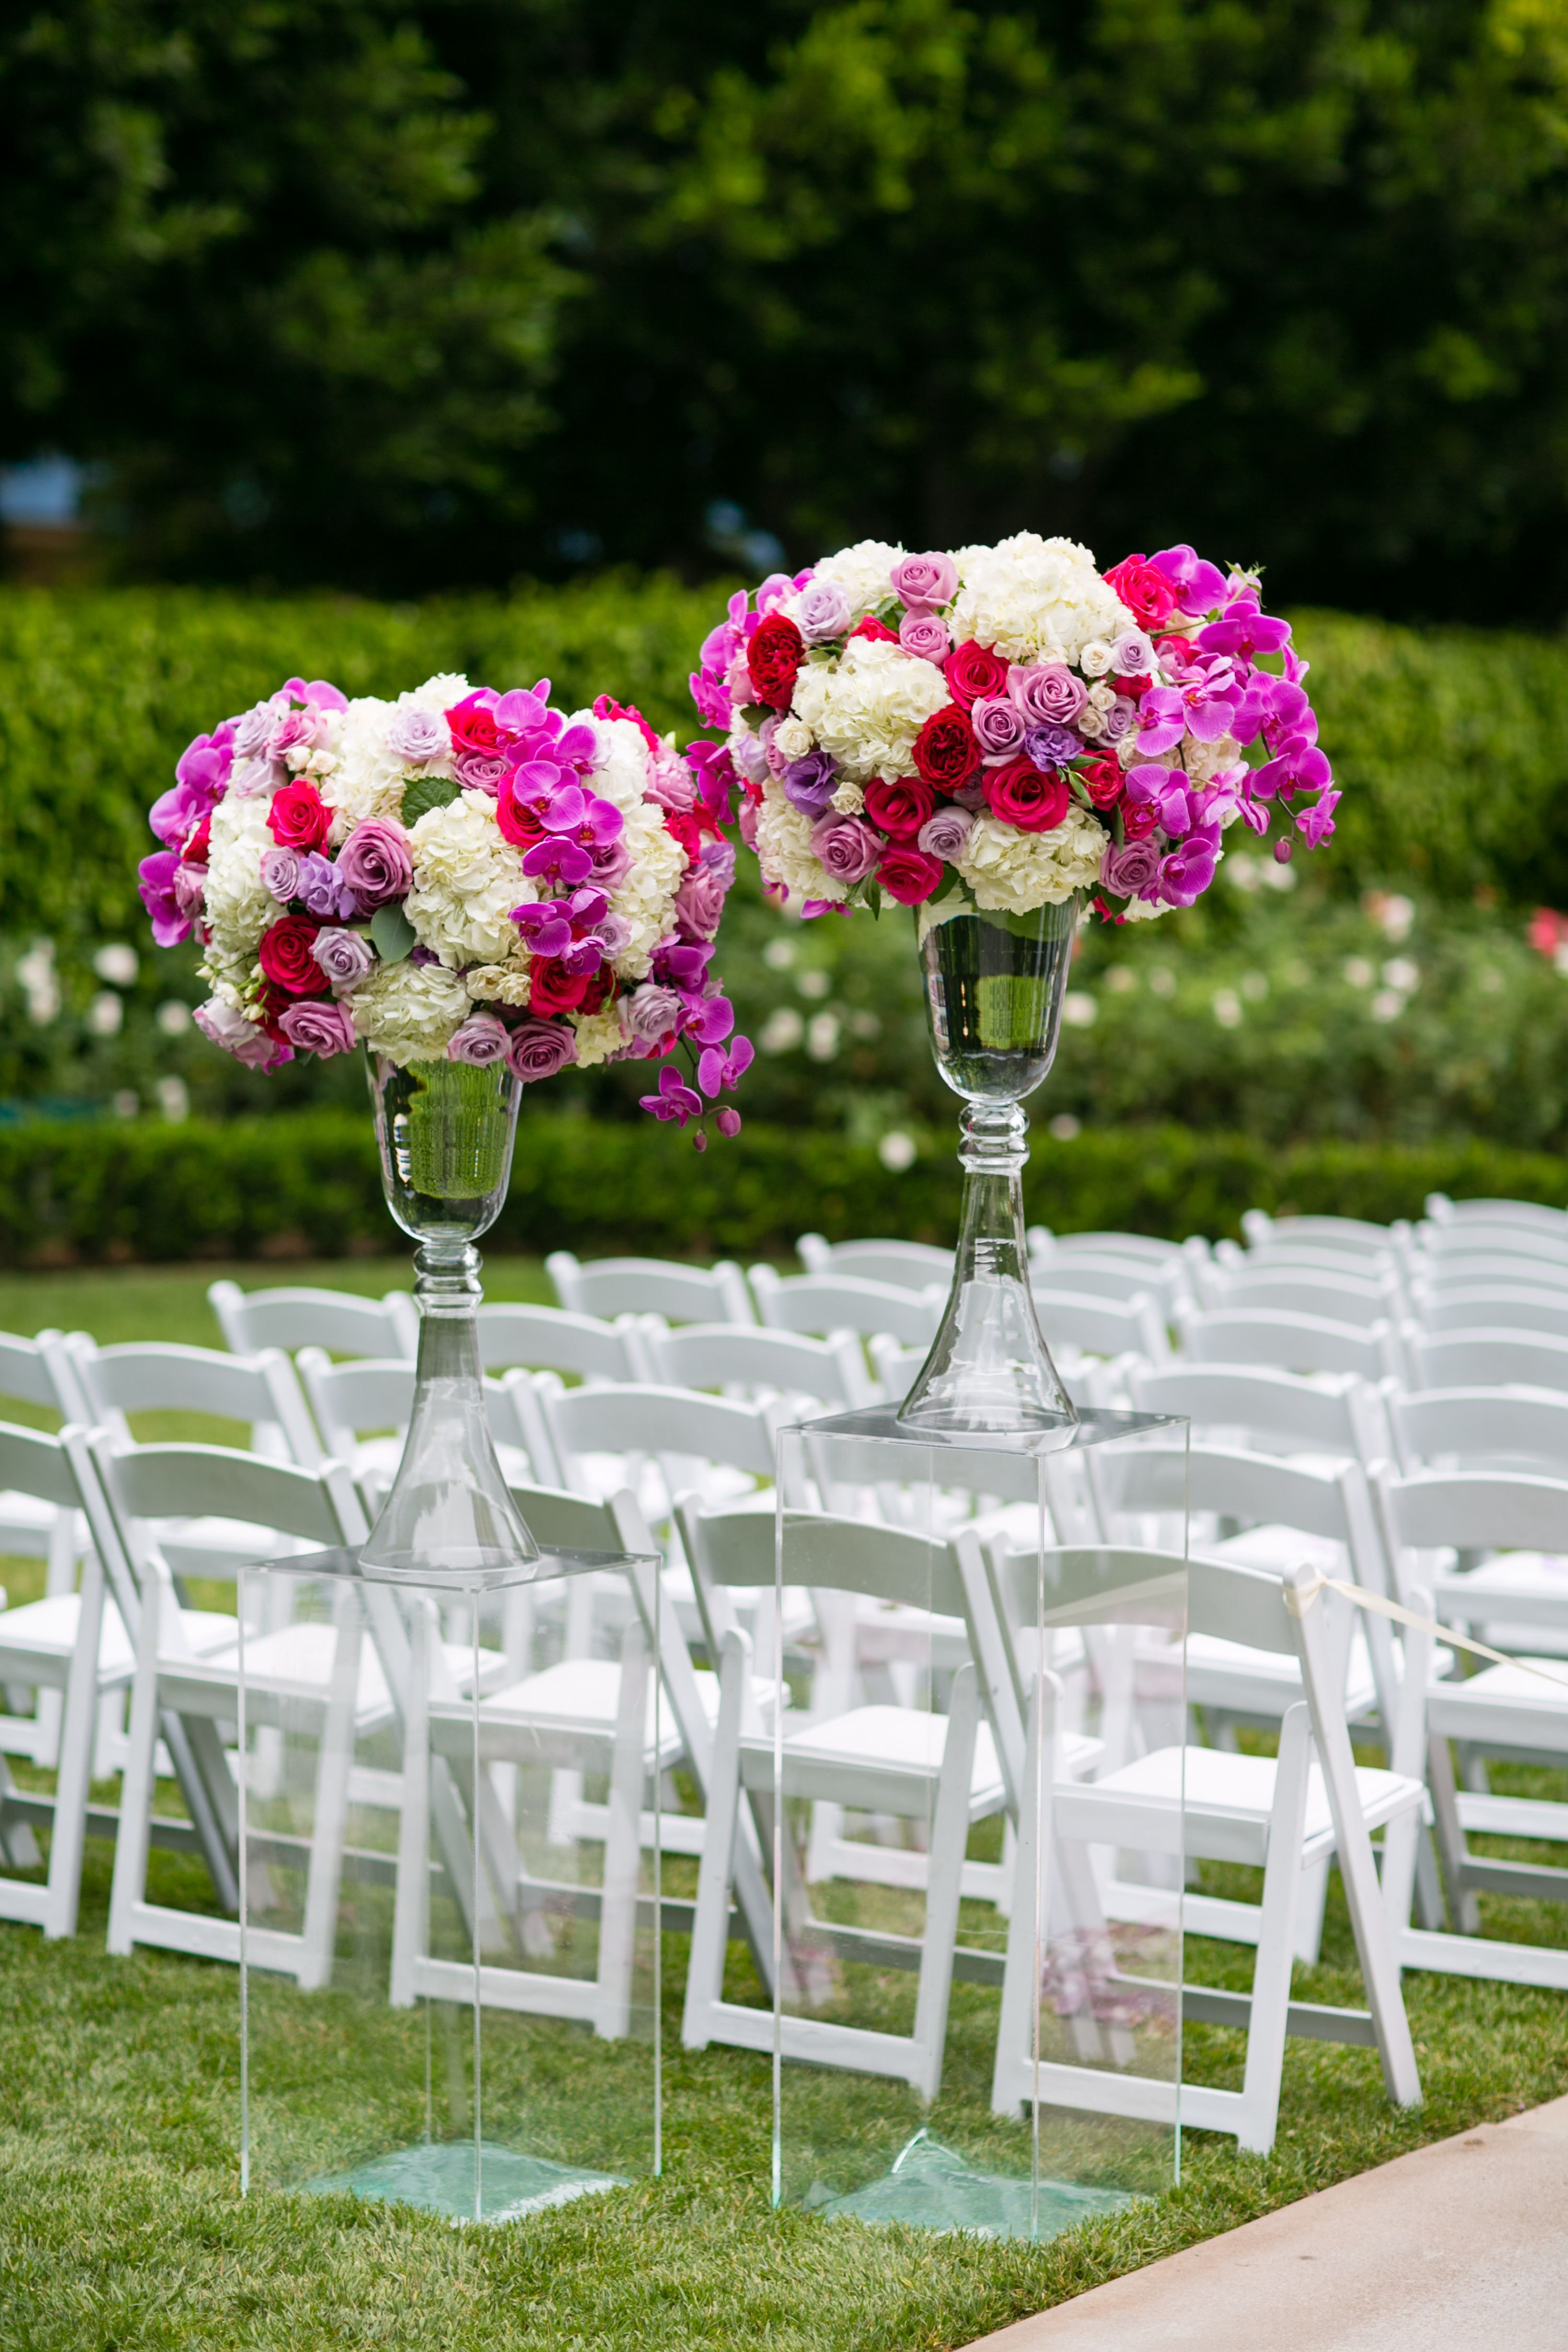 Pin by DLR Weddings on Rose Court Garden Ceremony